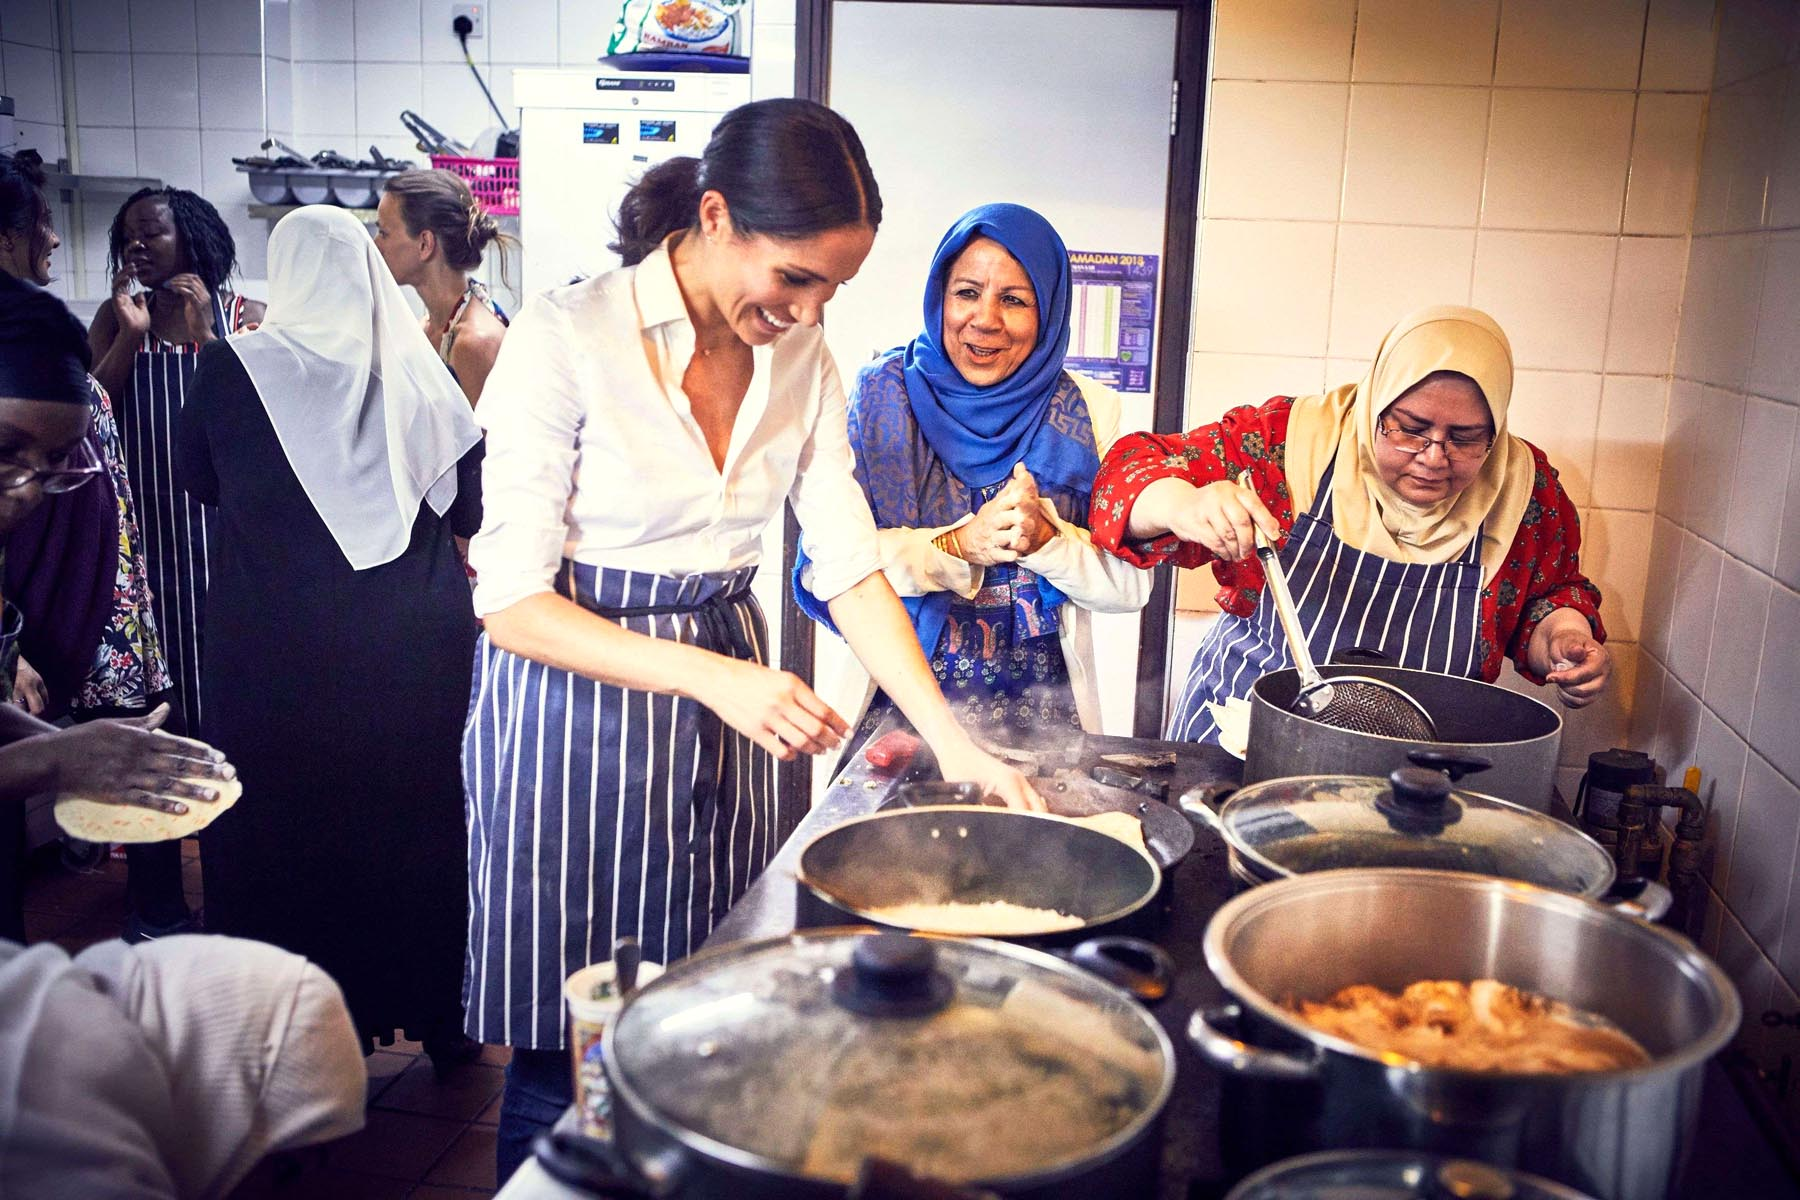 Meghan Markle, Duchess of Sussex, cooks with Muslim women at the Al Manaar Muslim Cultural Heritage Centre in West London, last September. (Kensington Palace)